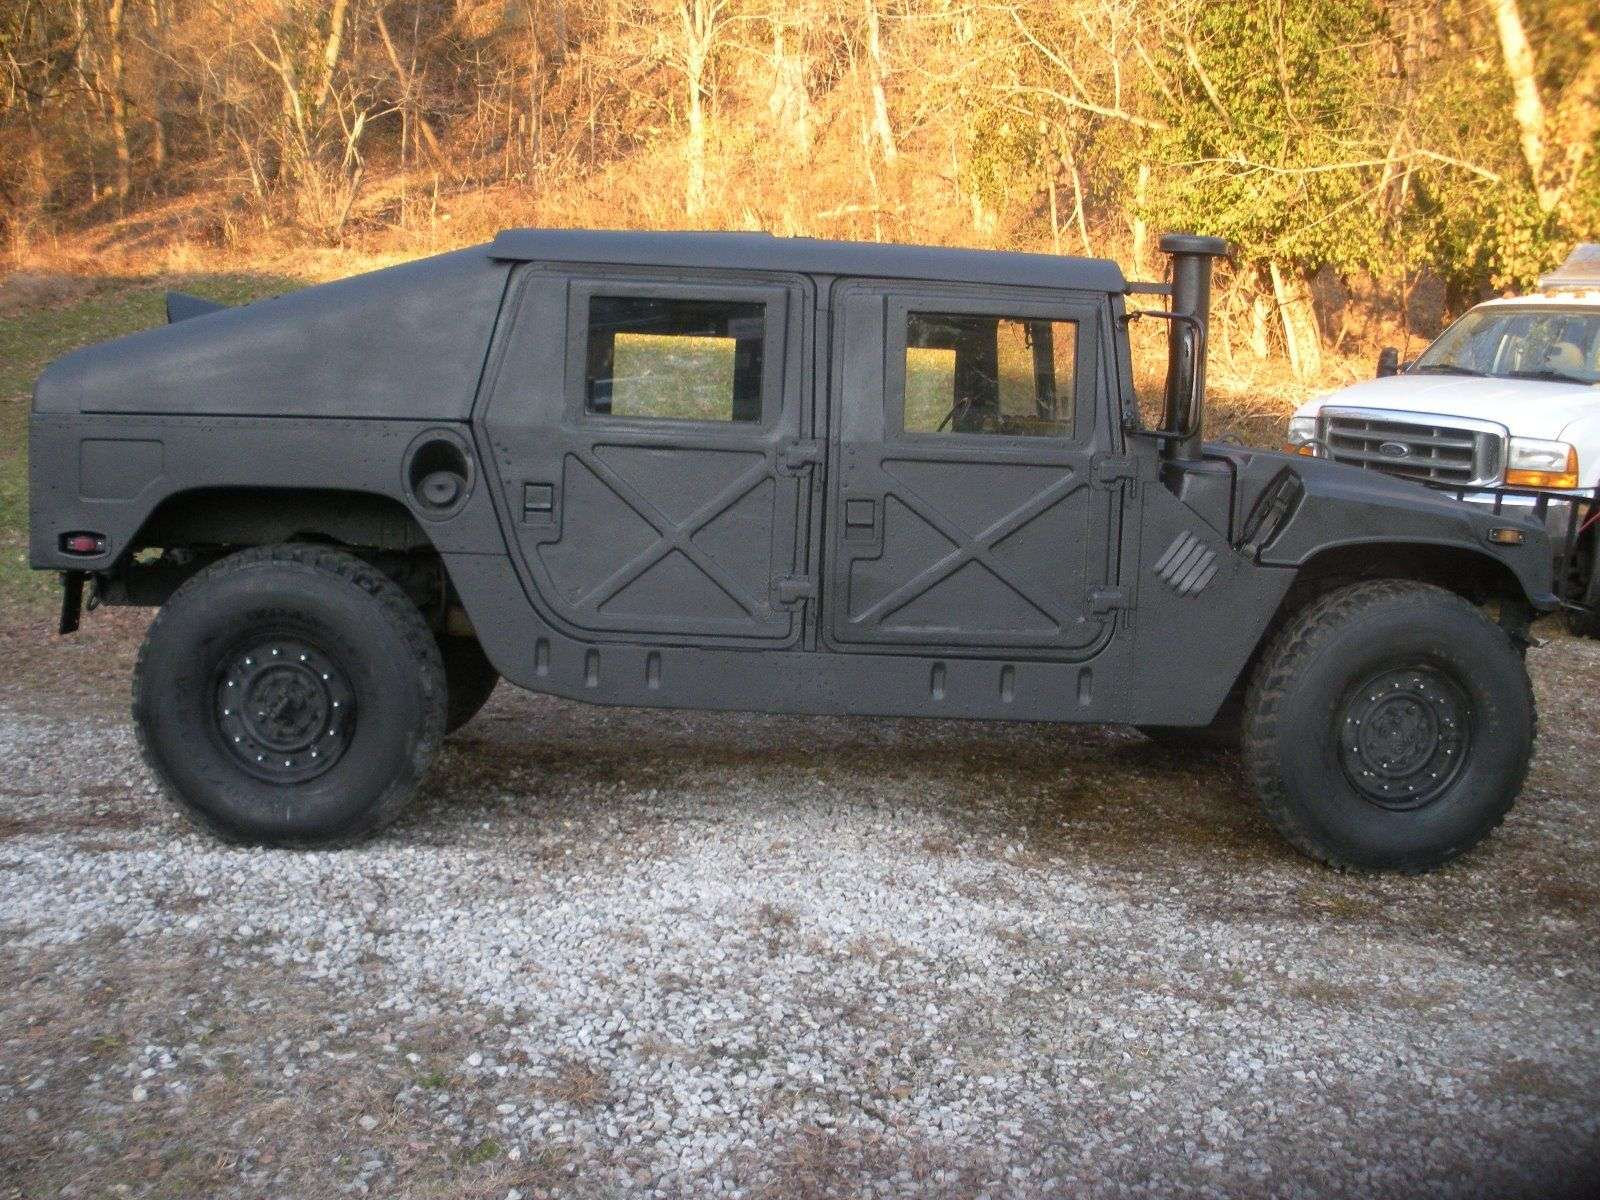 Is Hummer Coming Back In 2018? >> Awesome 1980 Hummer H1 Slant Back 1989 Humvee Slant Back With Turret Hummer H1 Military Humvee 2018 2019